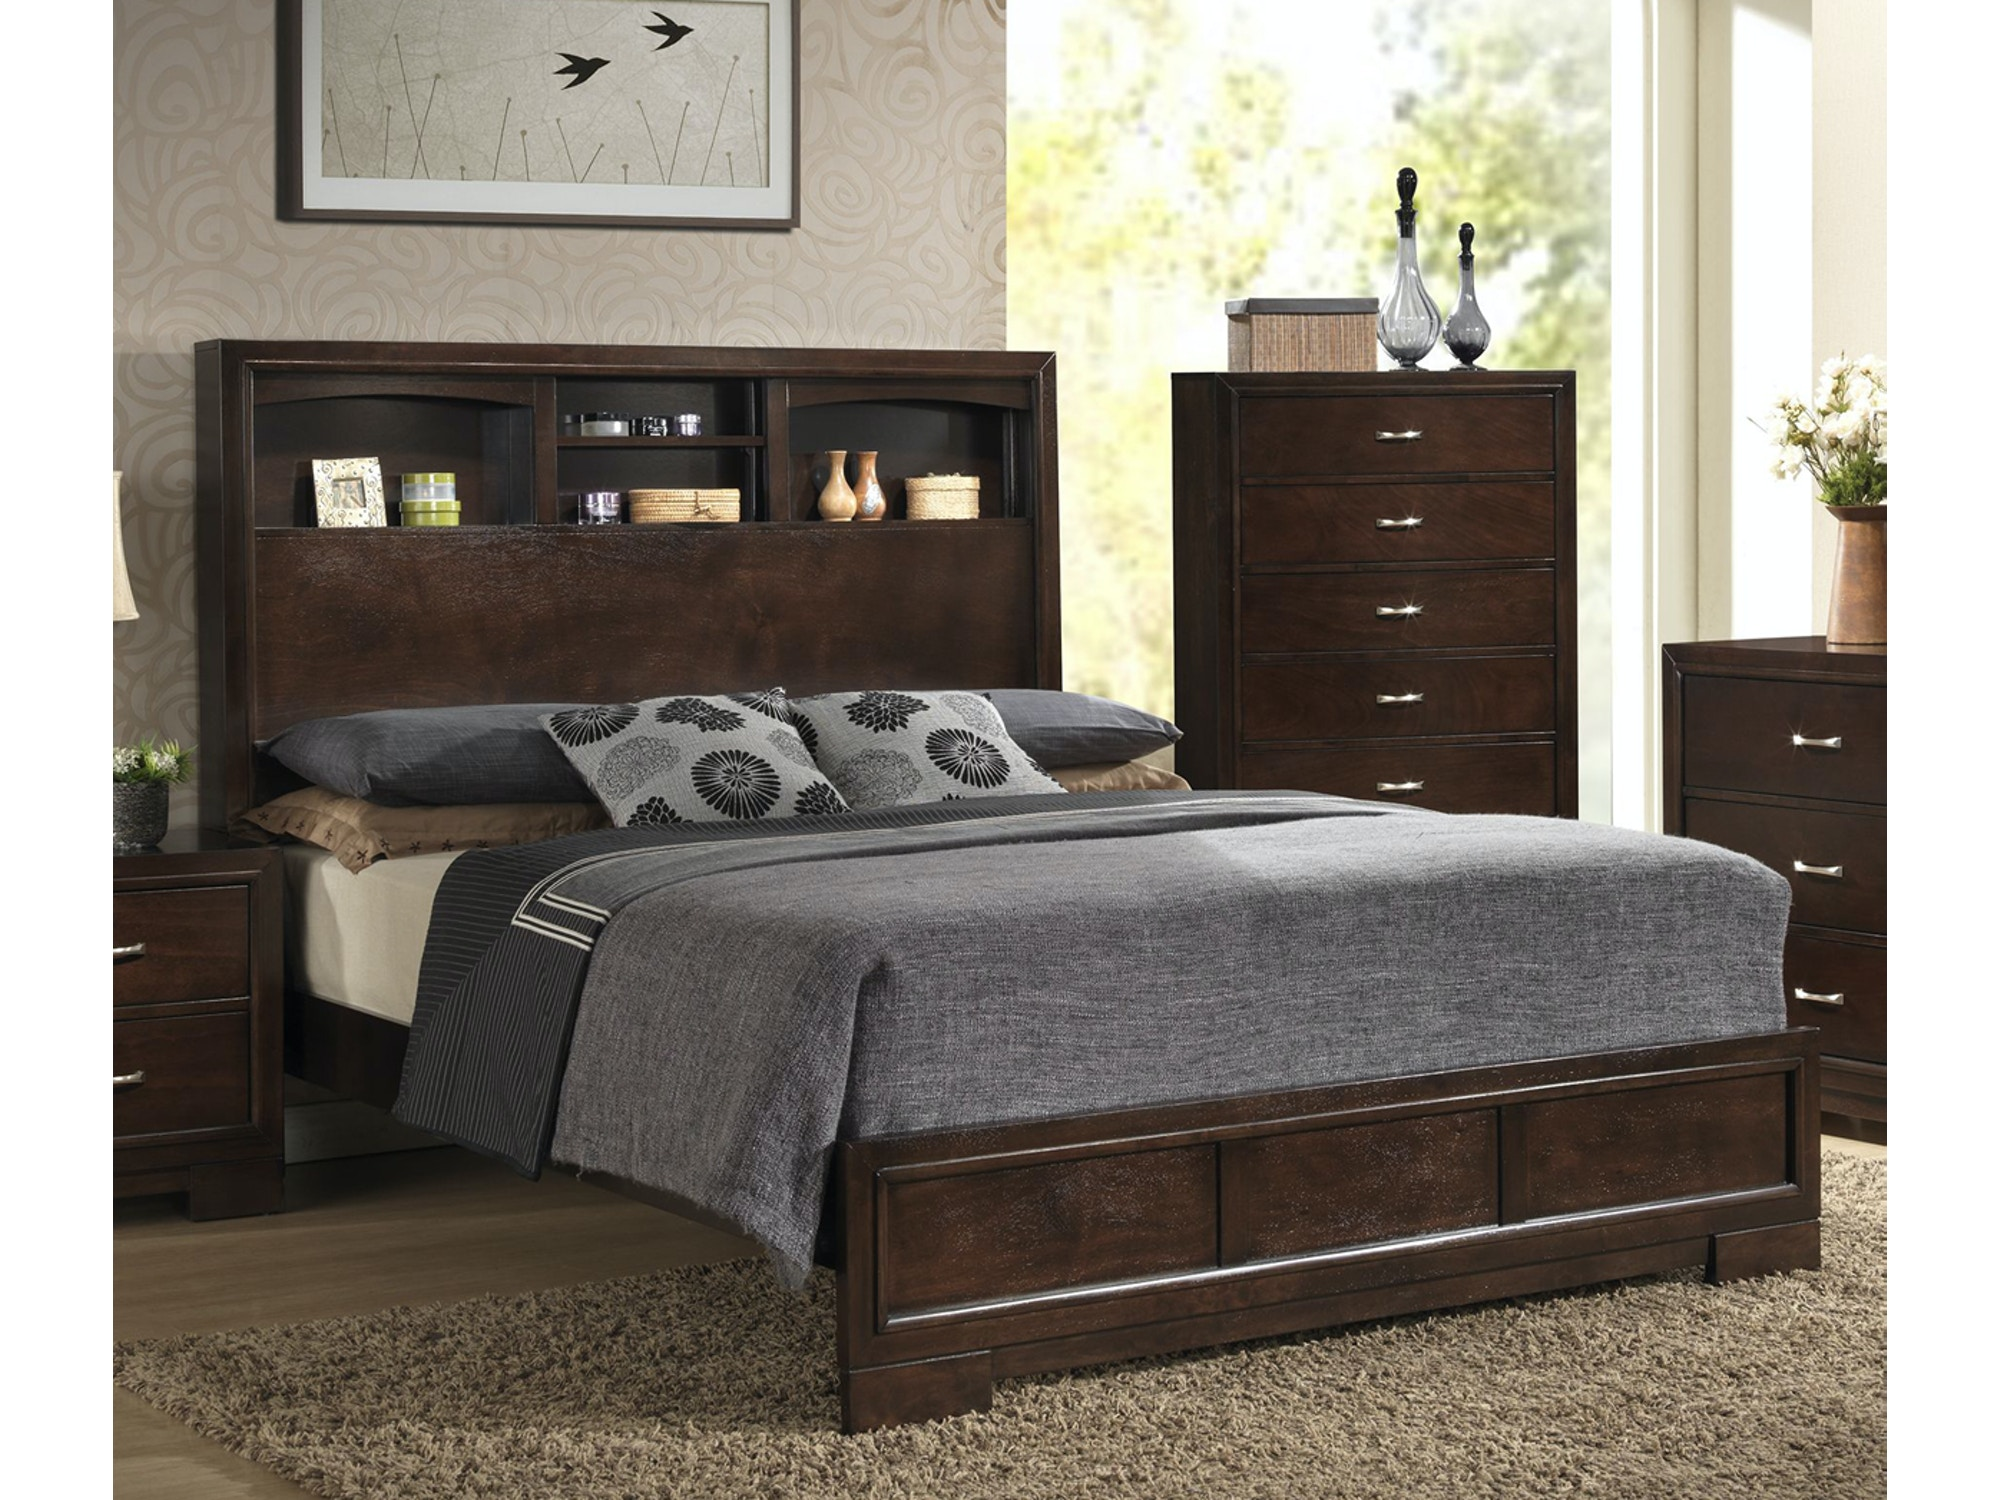 Alameda Bookcase Bed - Queen 107275